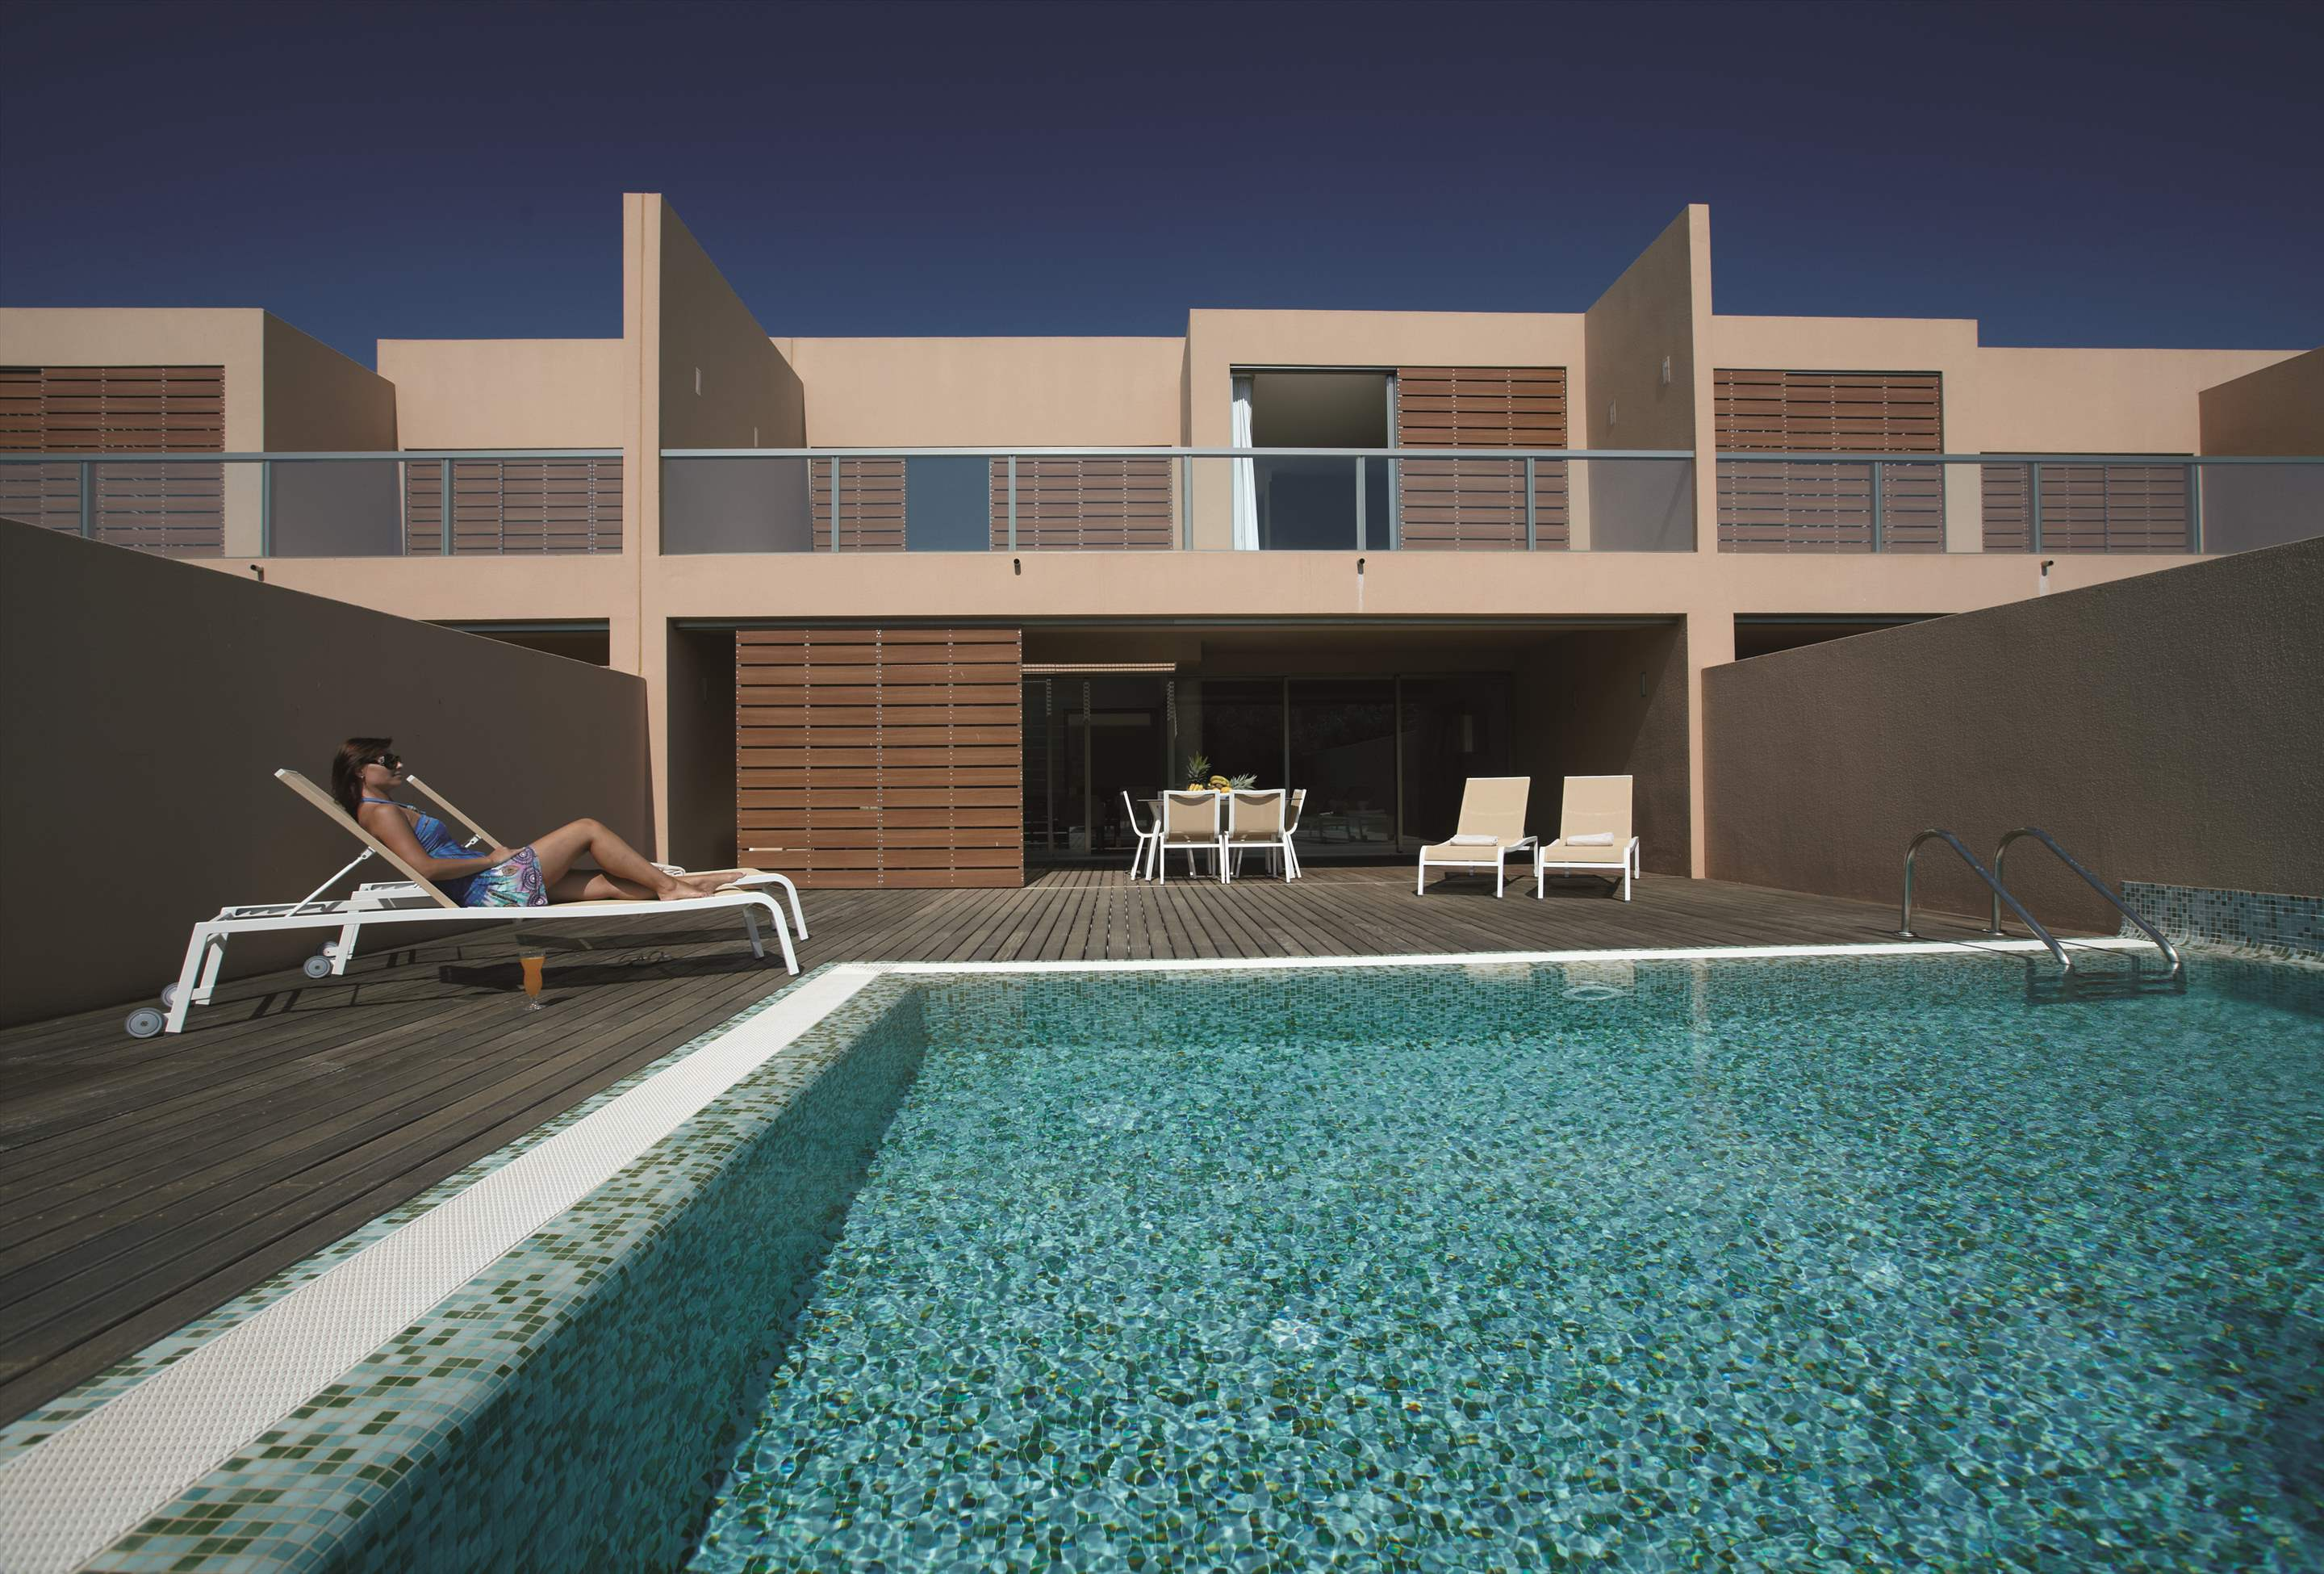 Vidamar Two Bedroom Villa, Self-Catering Basis, 2 bedroom villa in Vidamar Resort, Algarve Photo #1